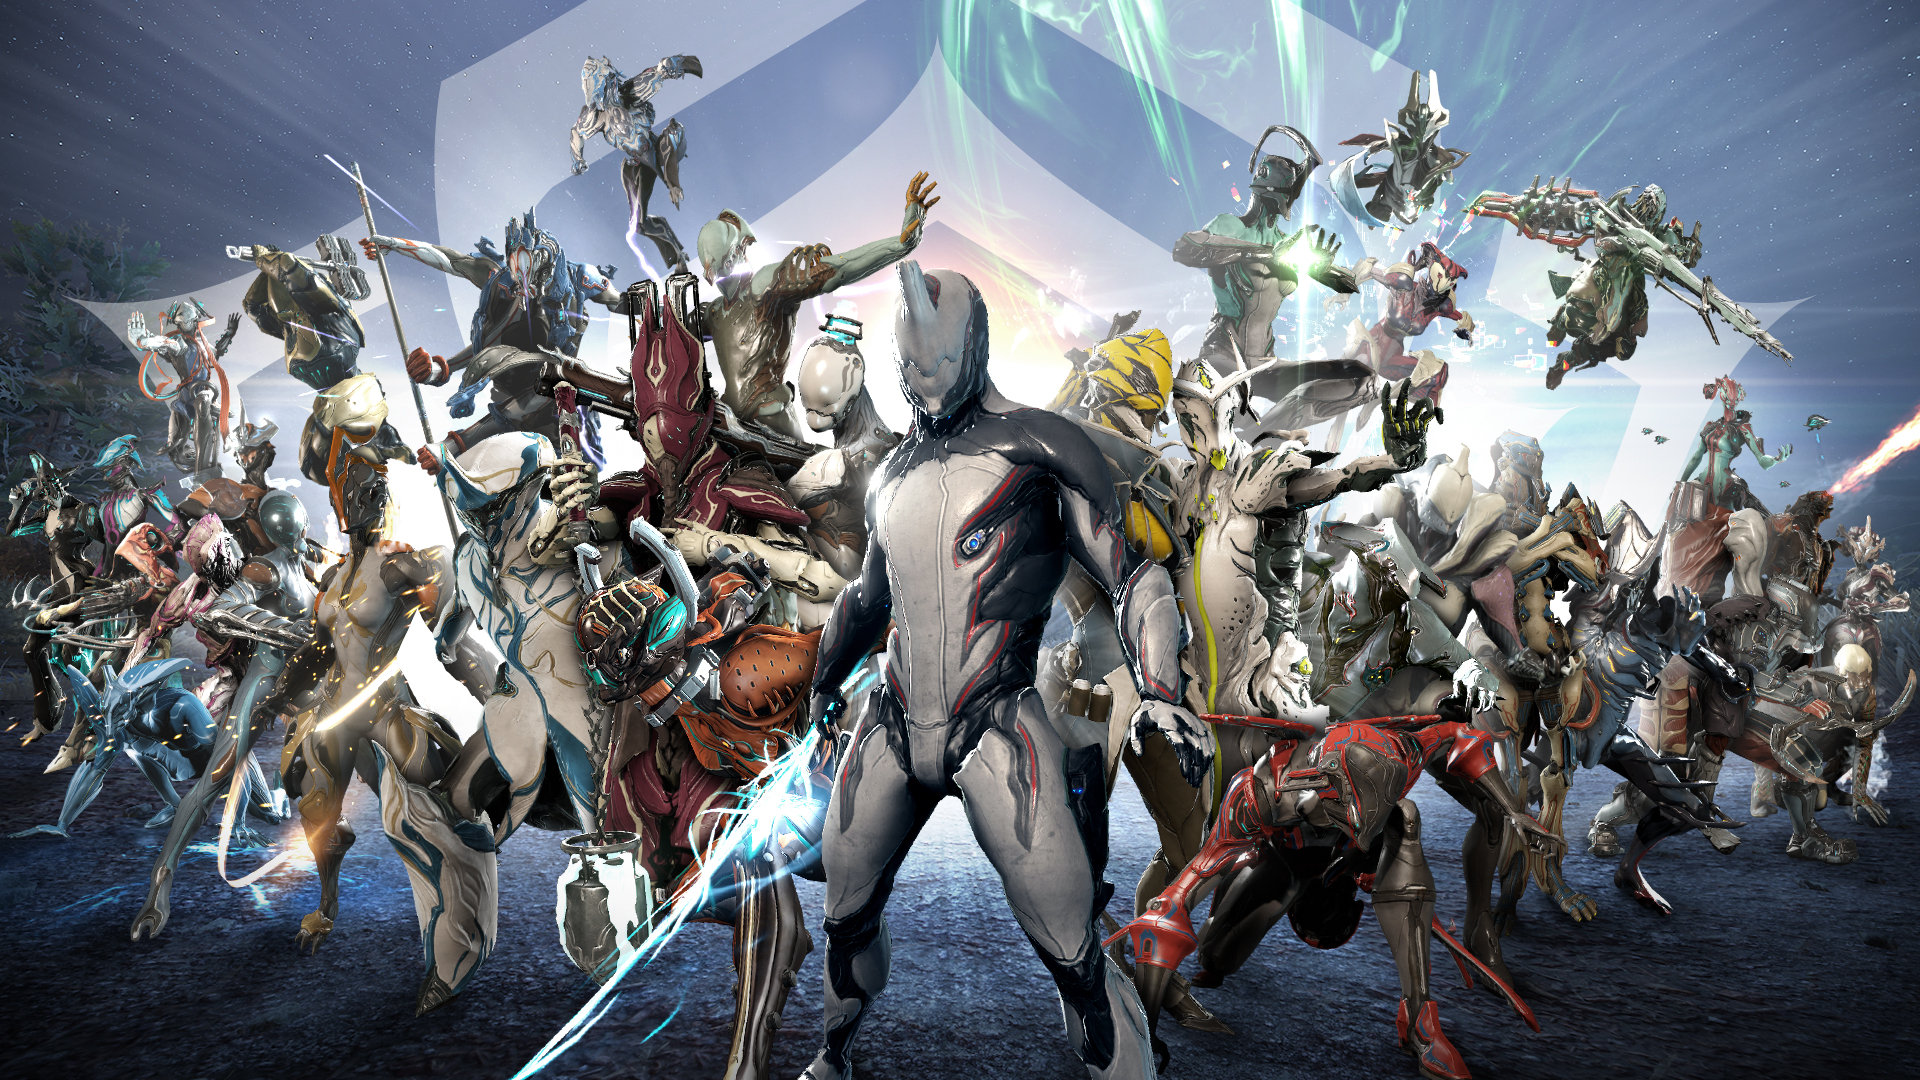 warframe - Best Free Nintendo Switch Games